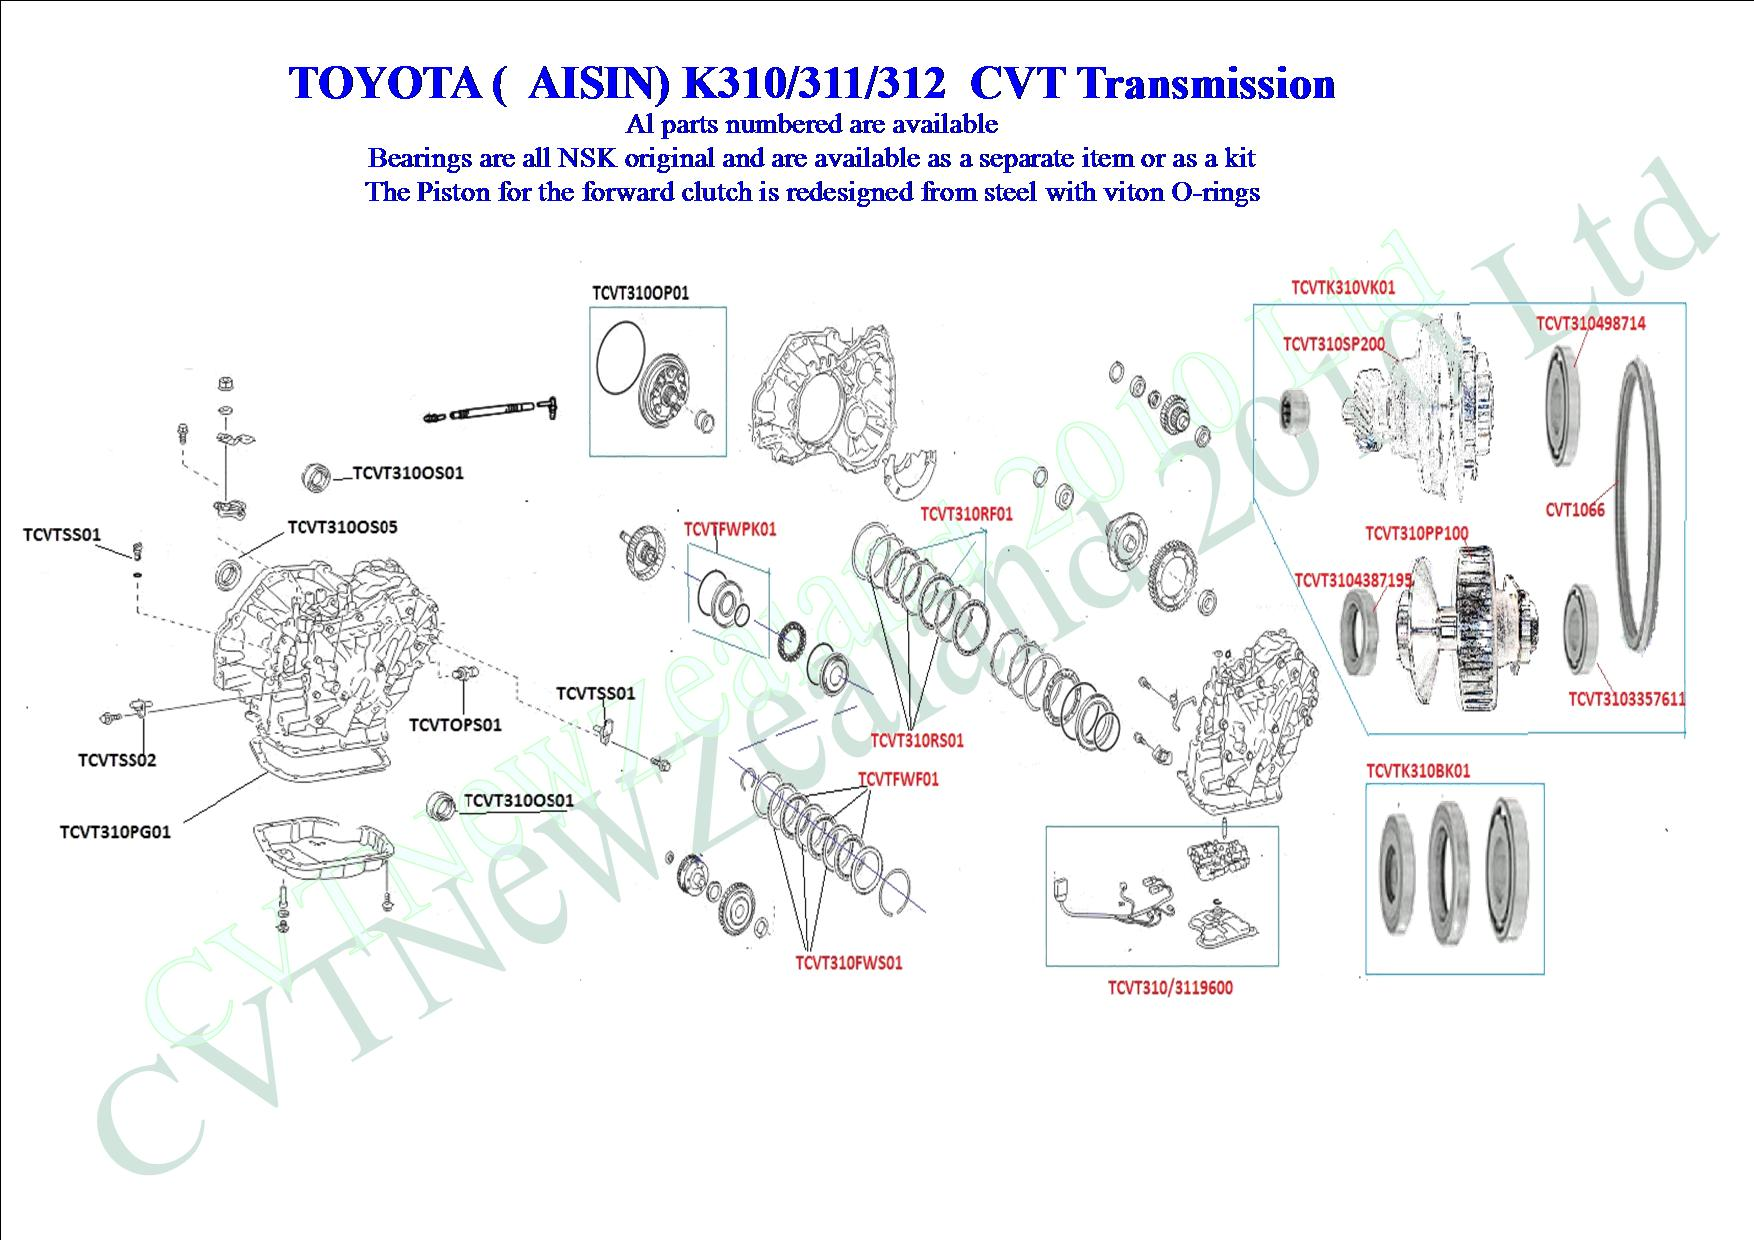 toyota cvt k310 cvt transmission cvt parts limited. Black Bedroom Furniture Sets. Home Design Ideas